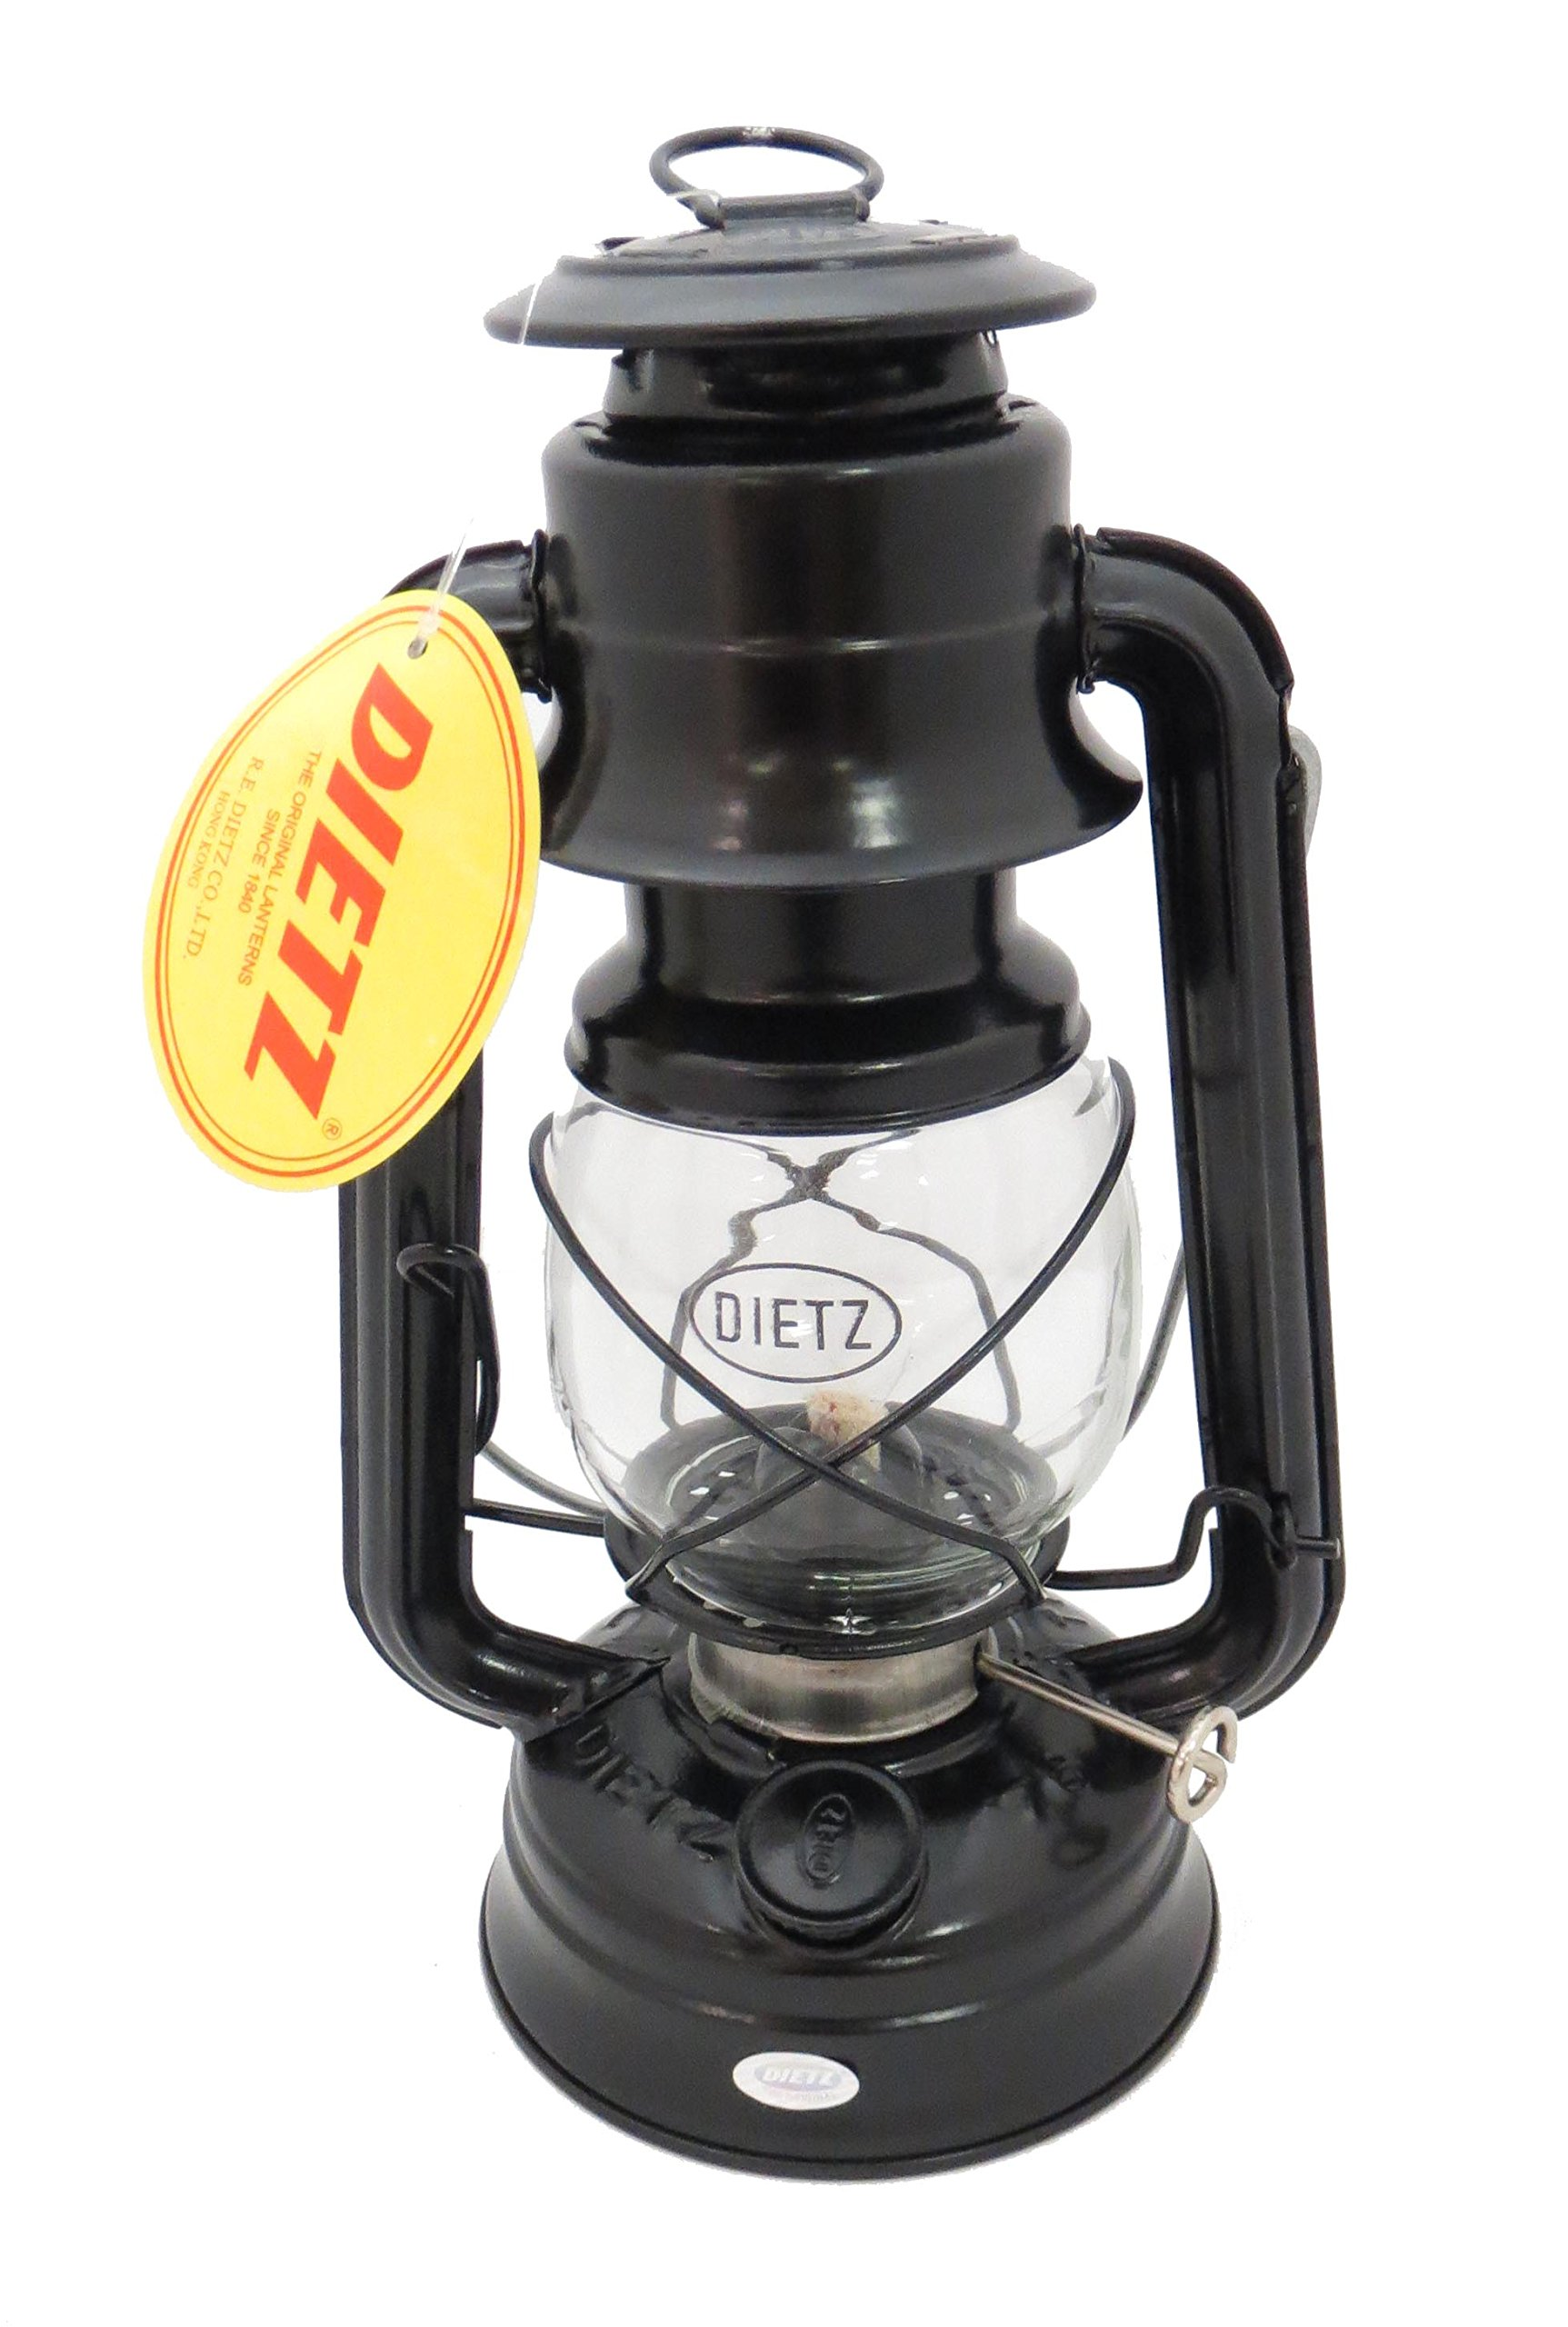 Dietz #76 Original Oil Burning Lantern (Black)